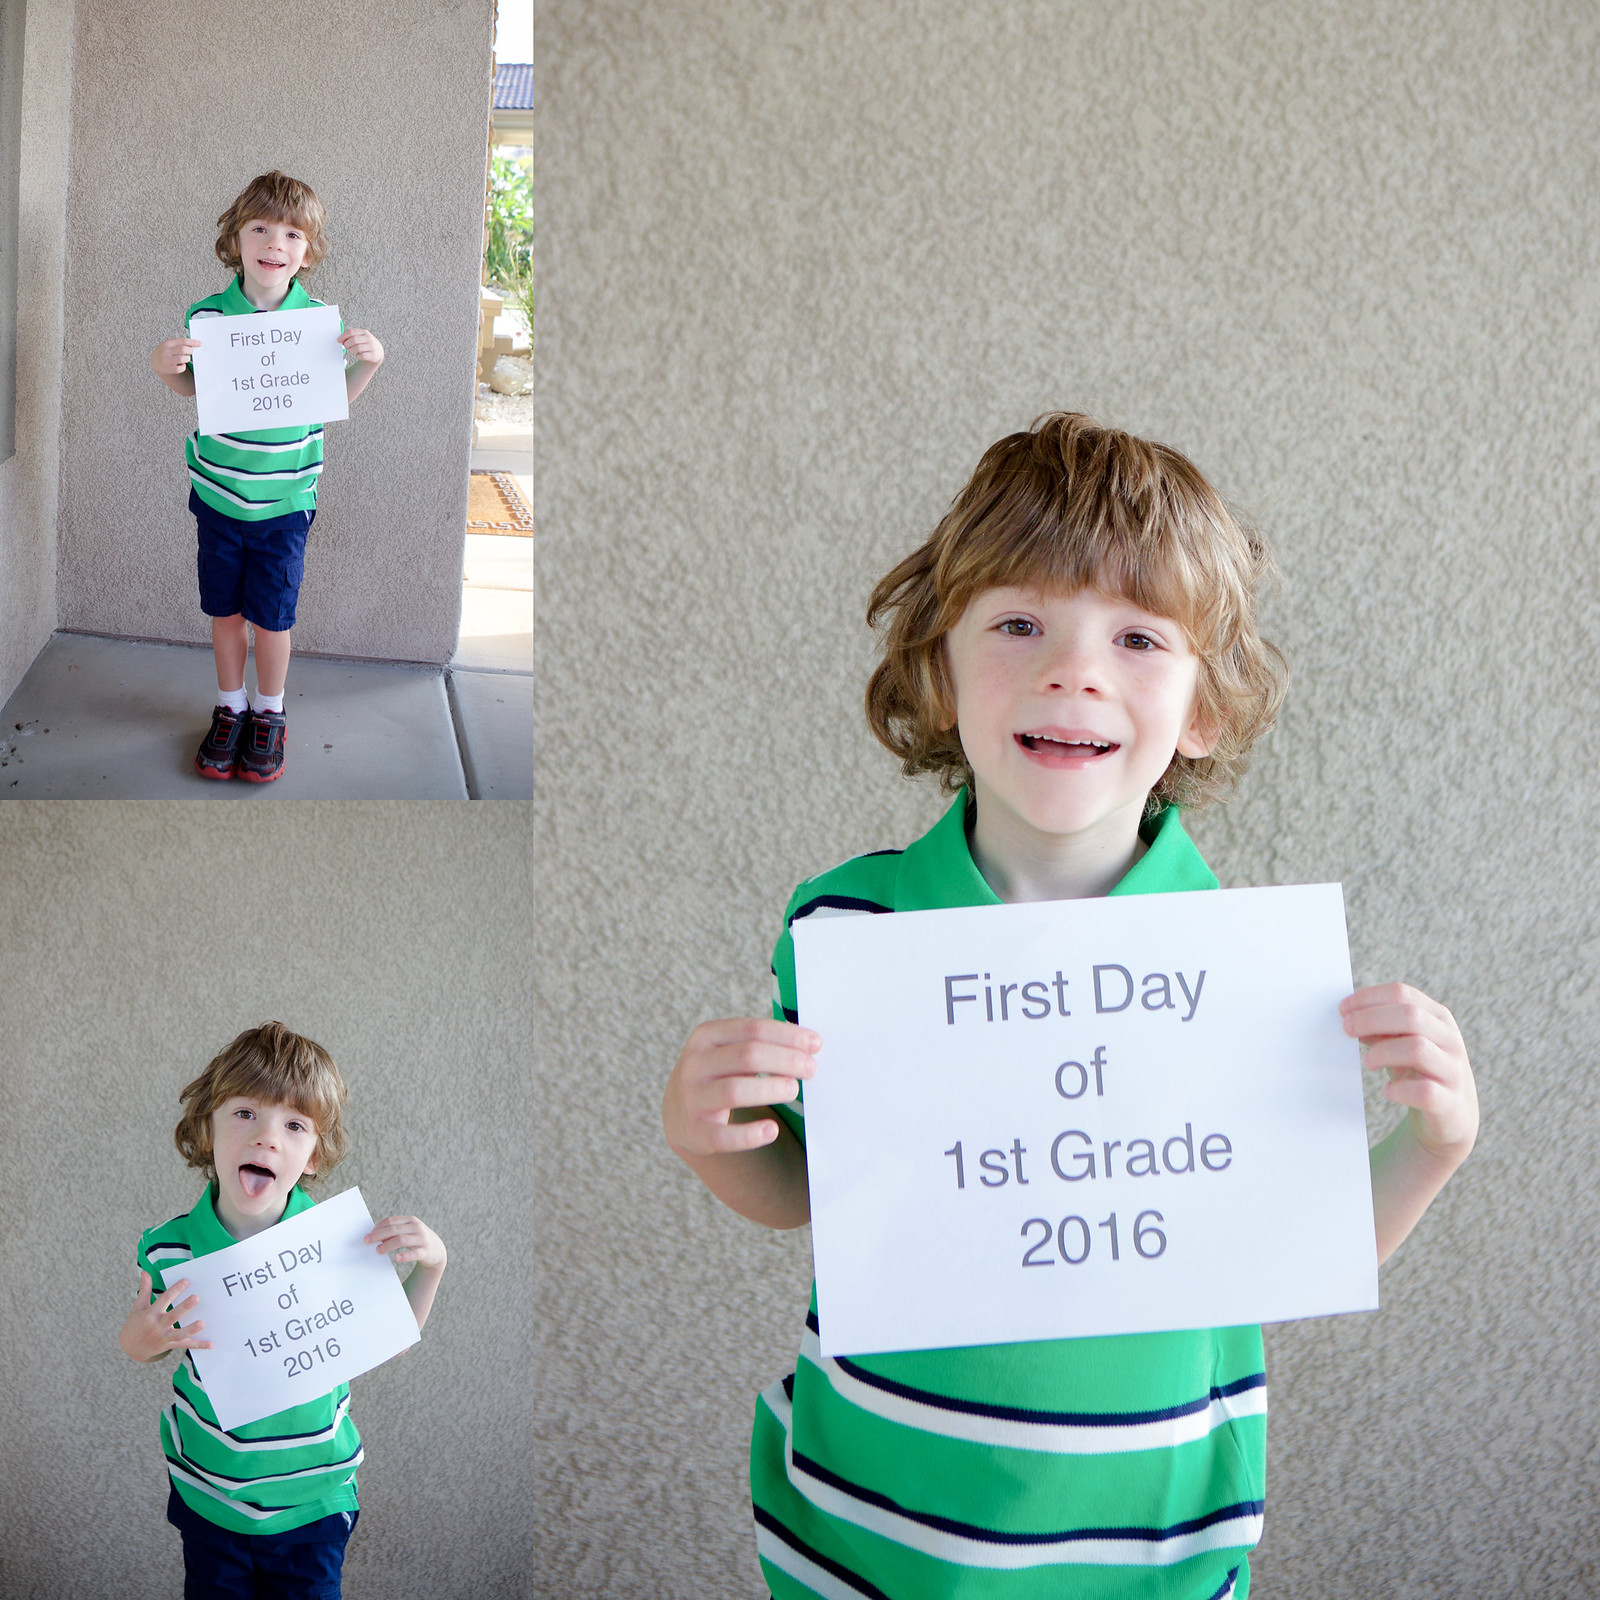 First Day School 2016